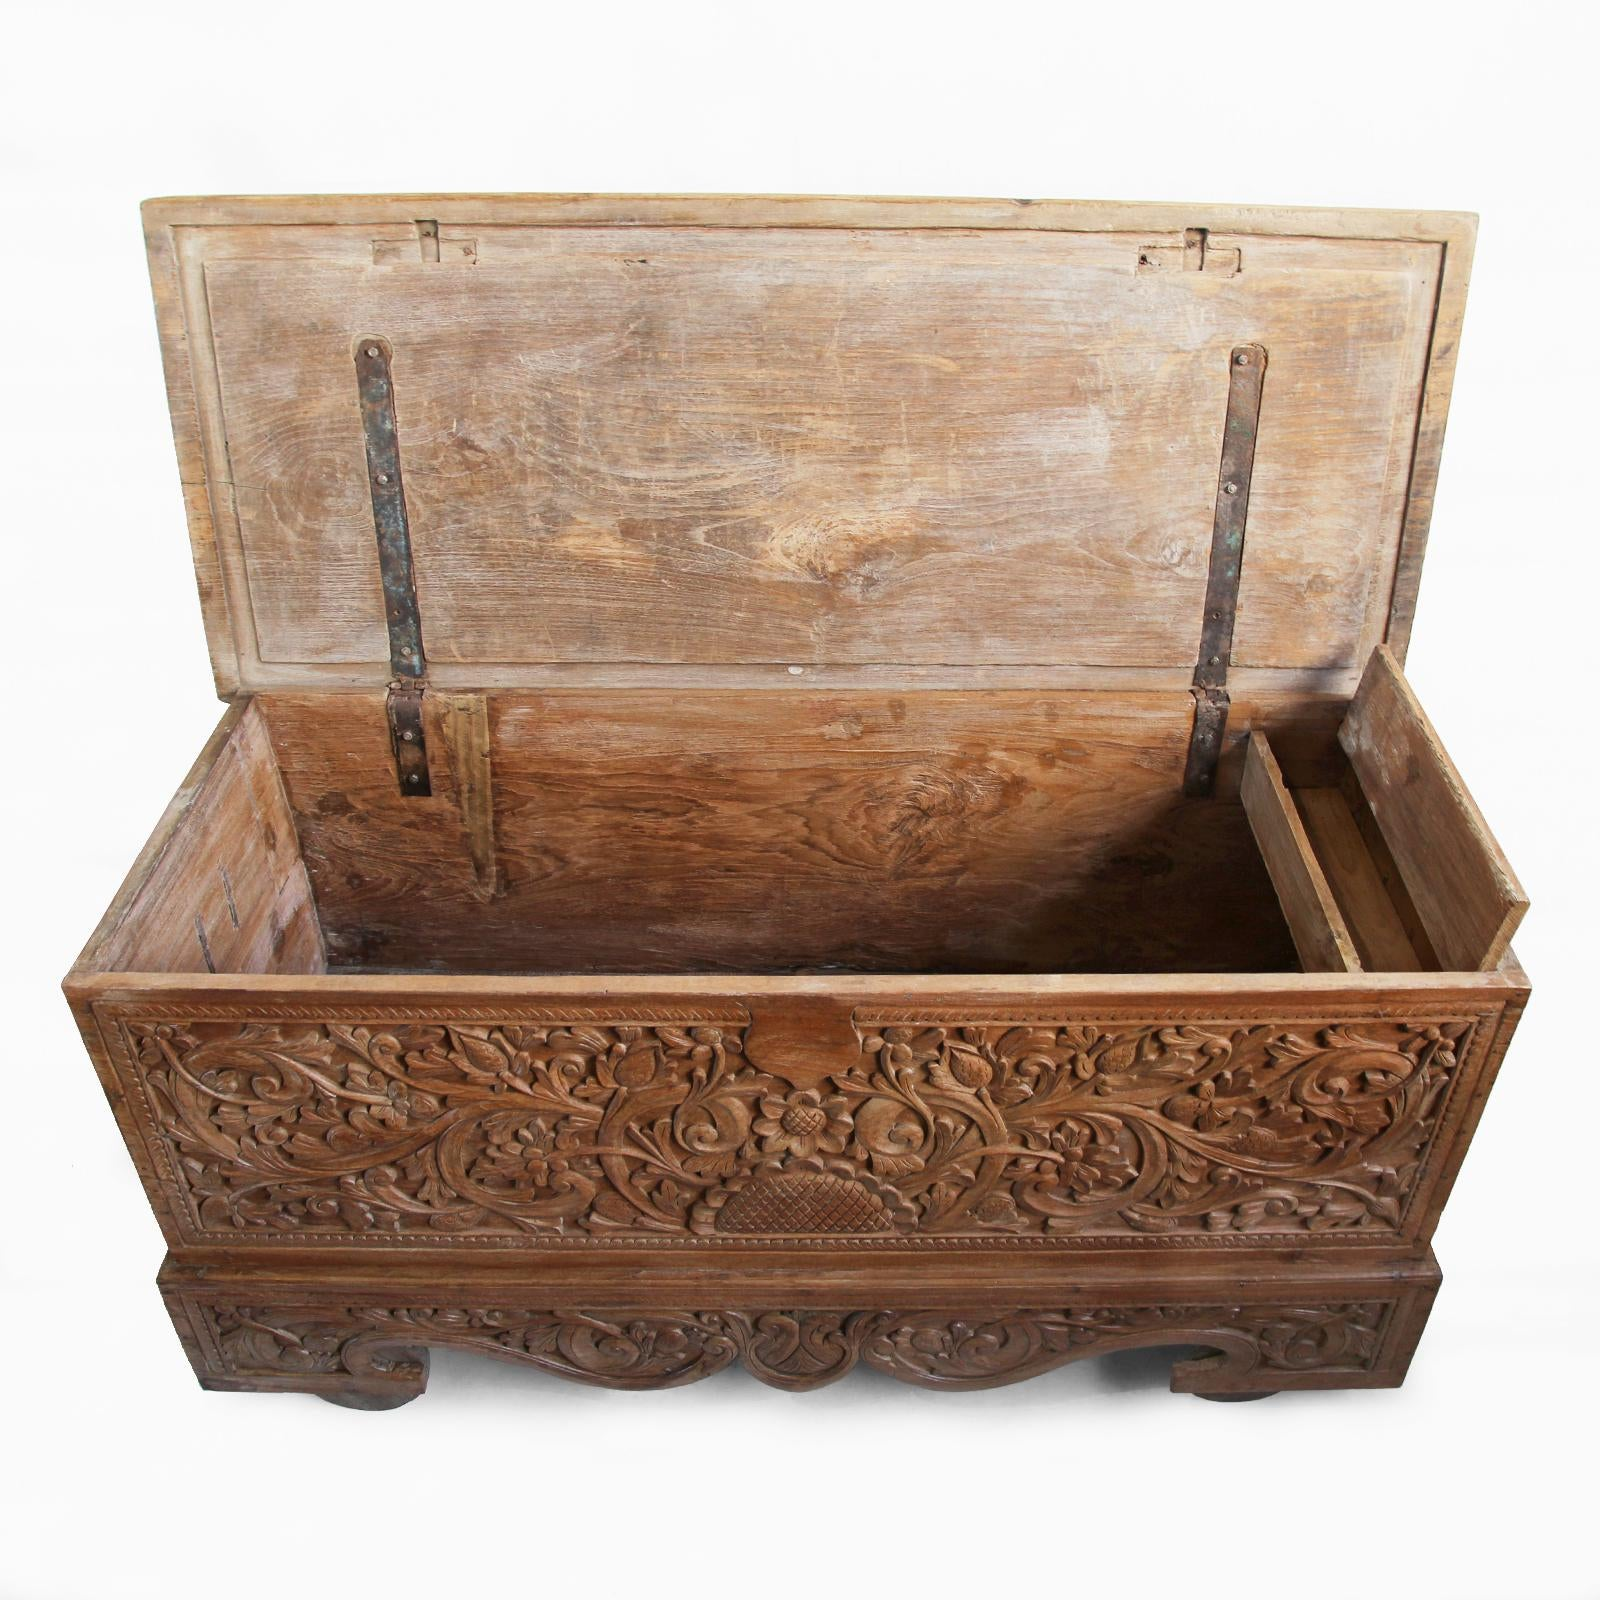 Ordinaire Antique Java Teak Wood Trunk For Sale   Image 4 Of 7